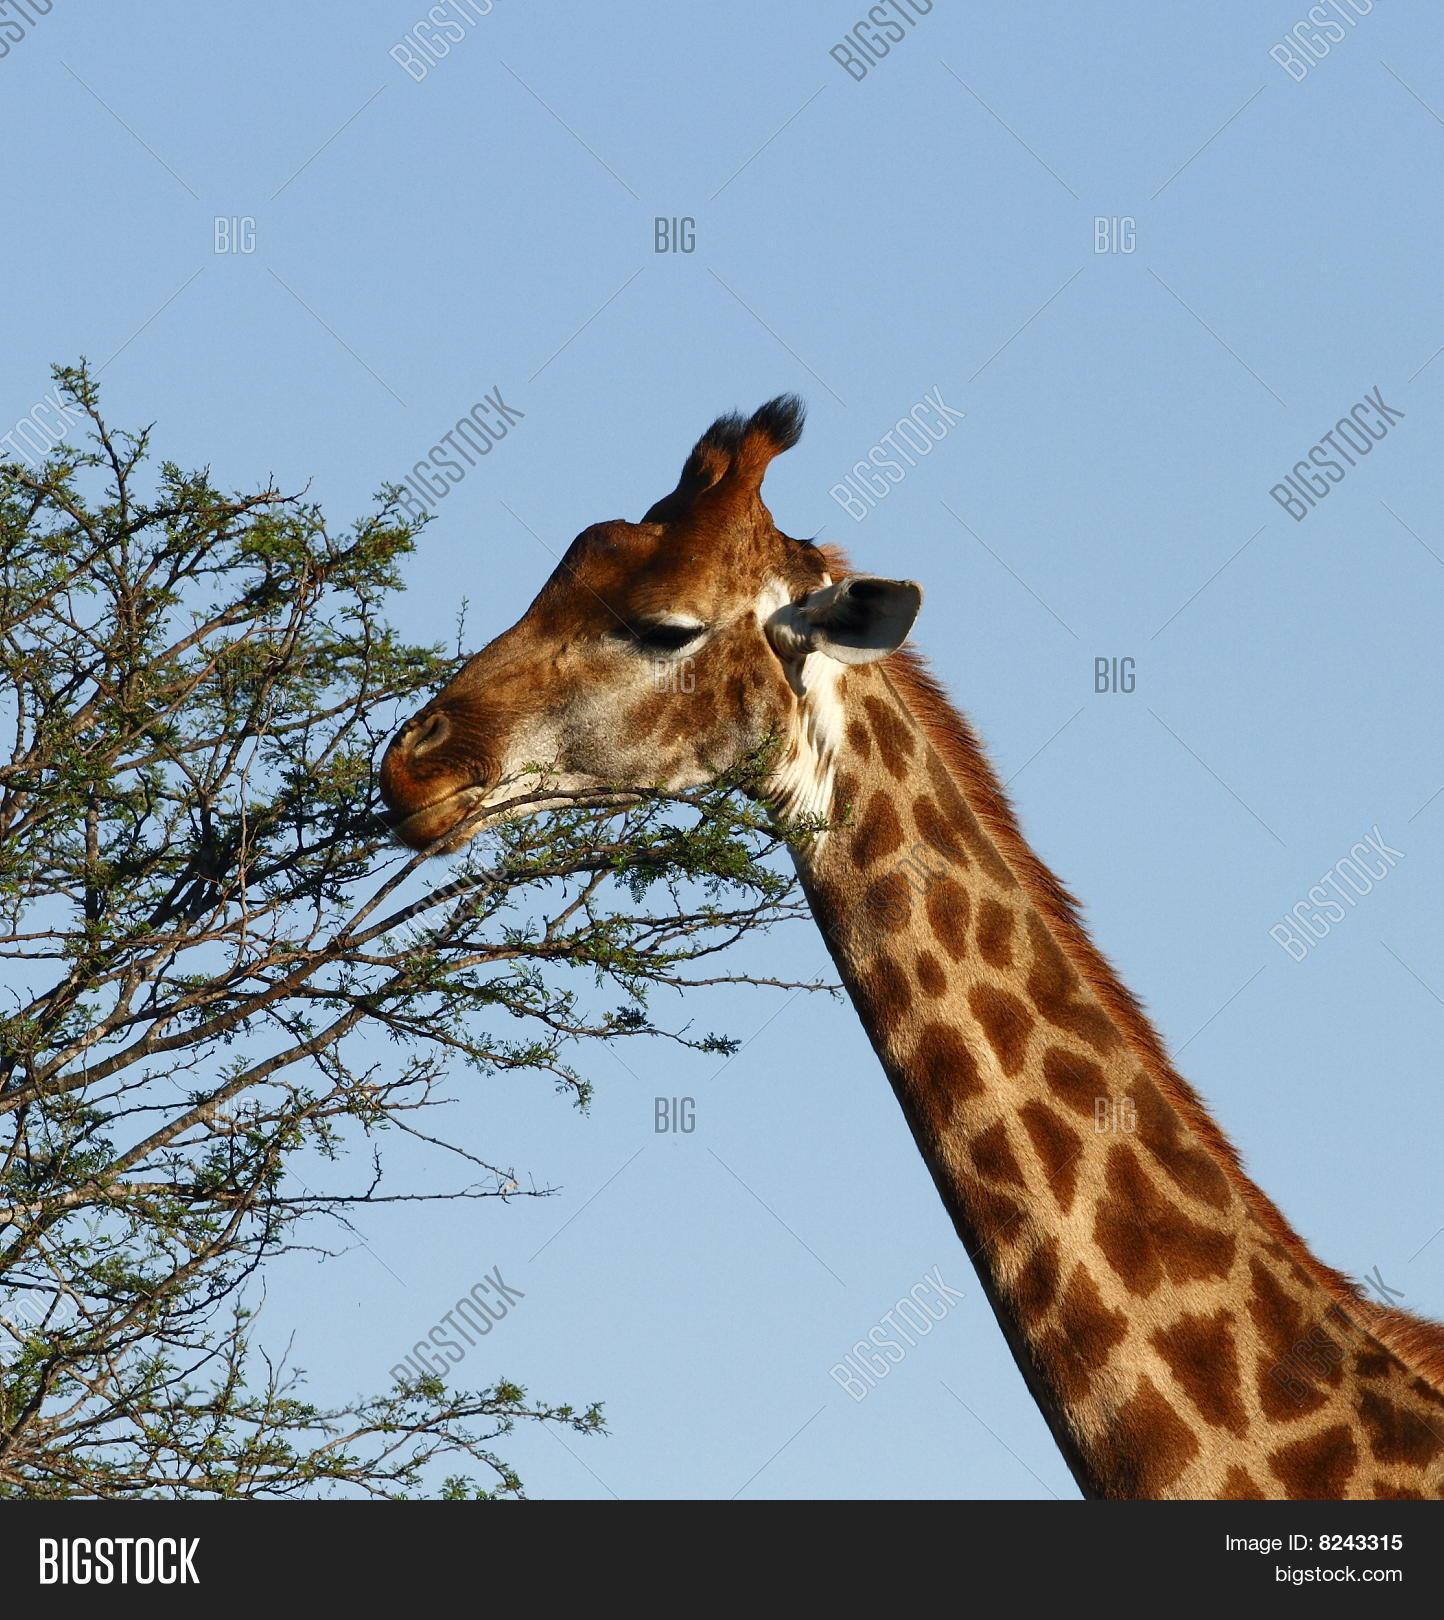 Giraffe eating leaves clipart